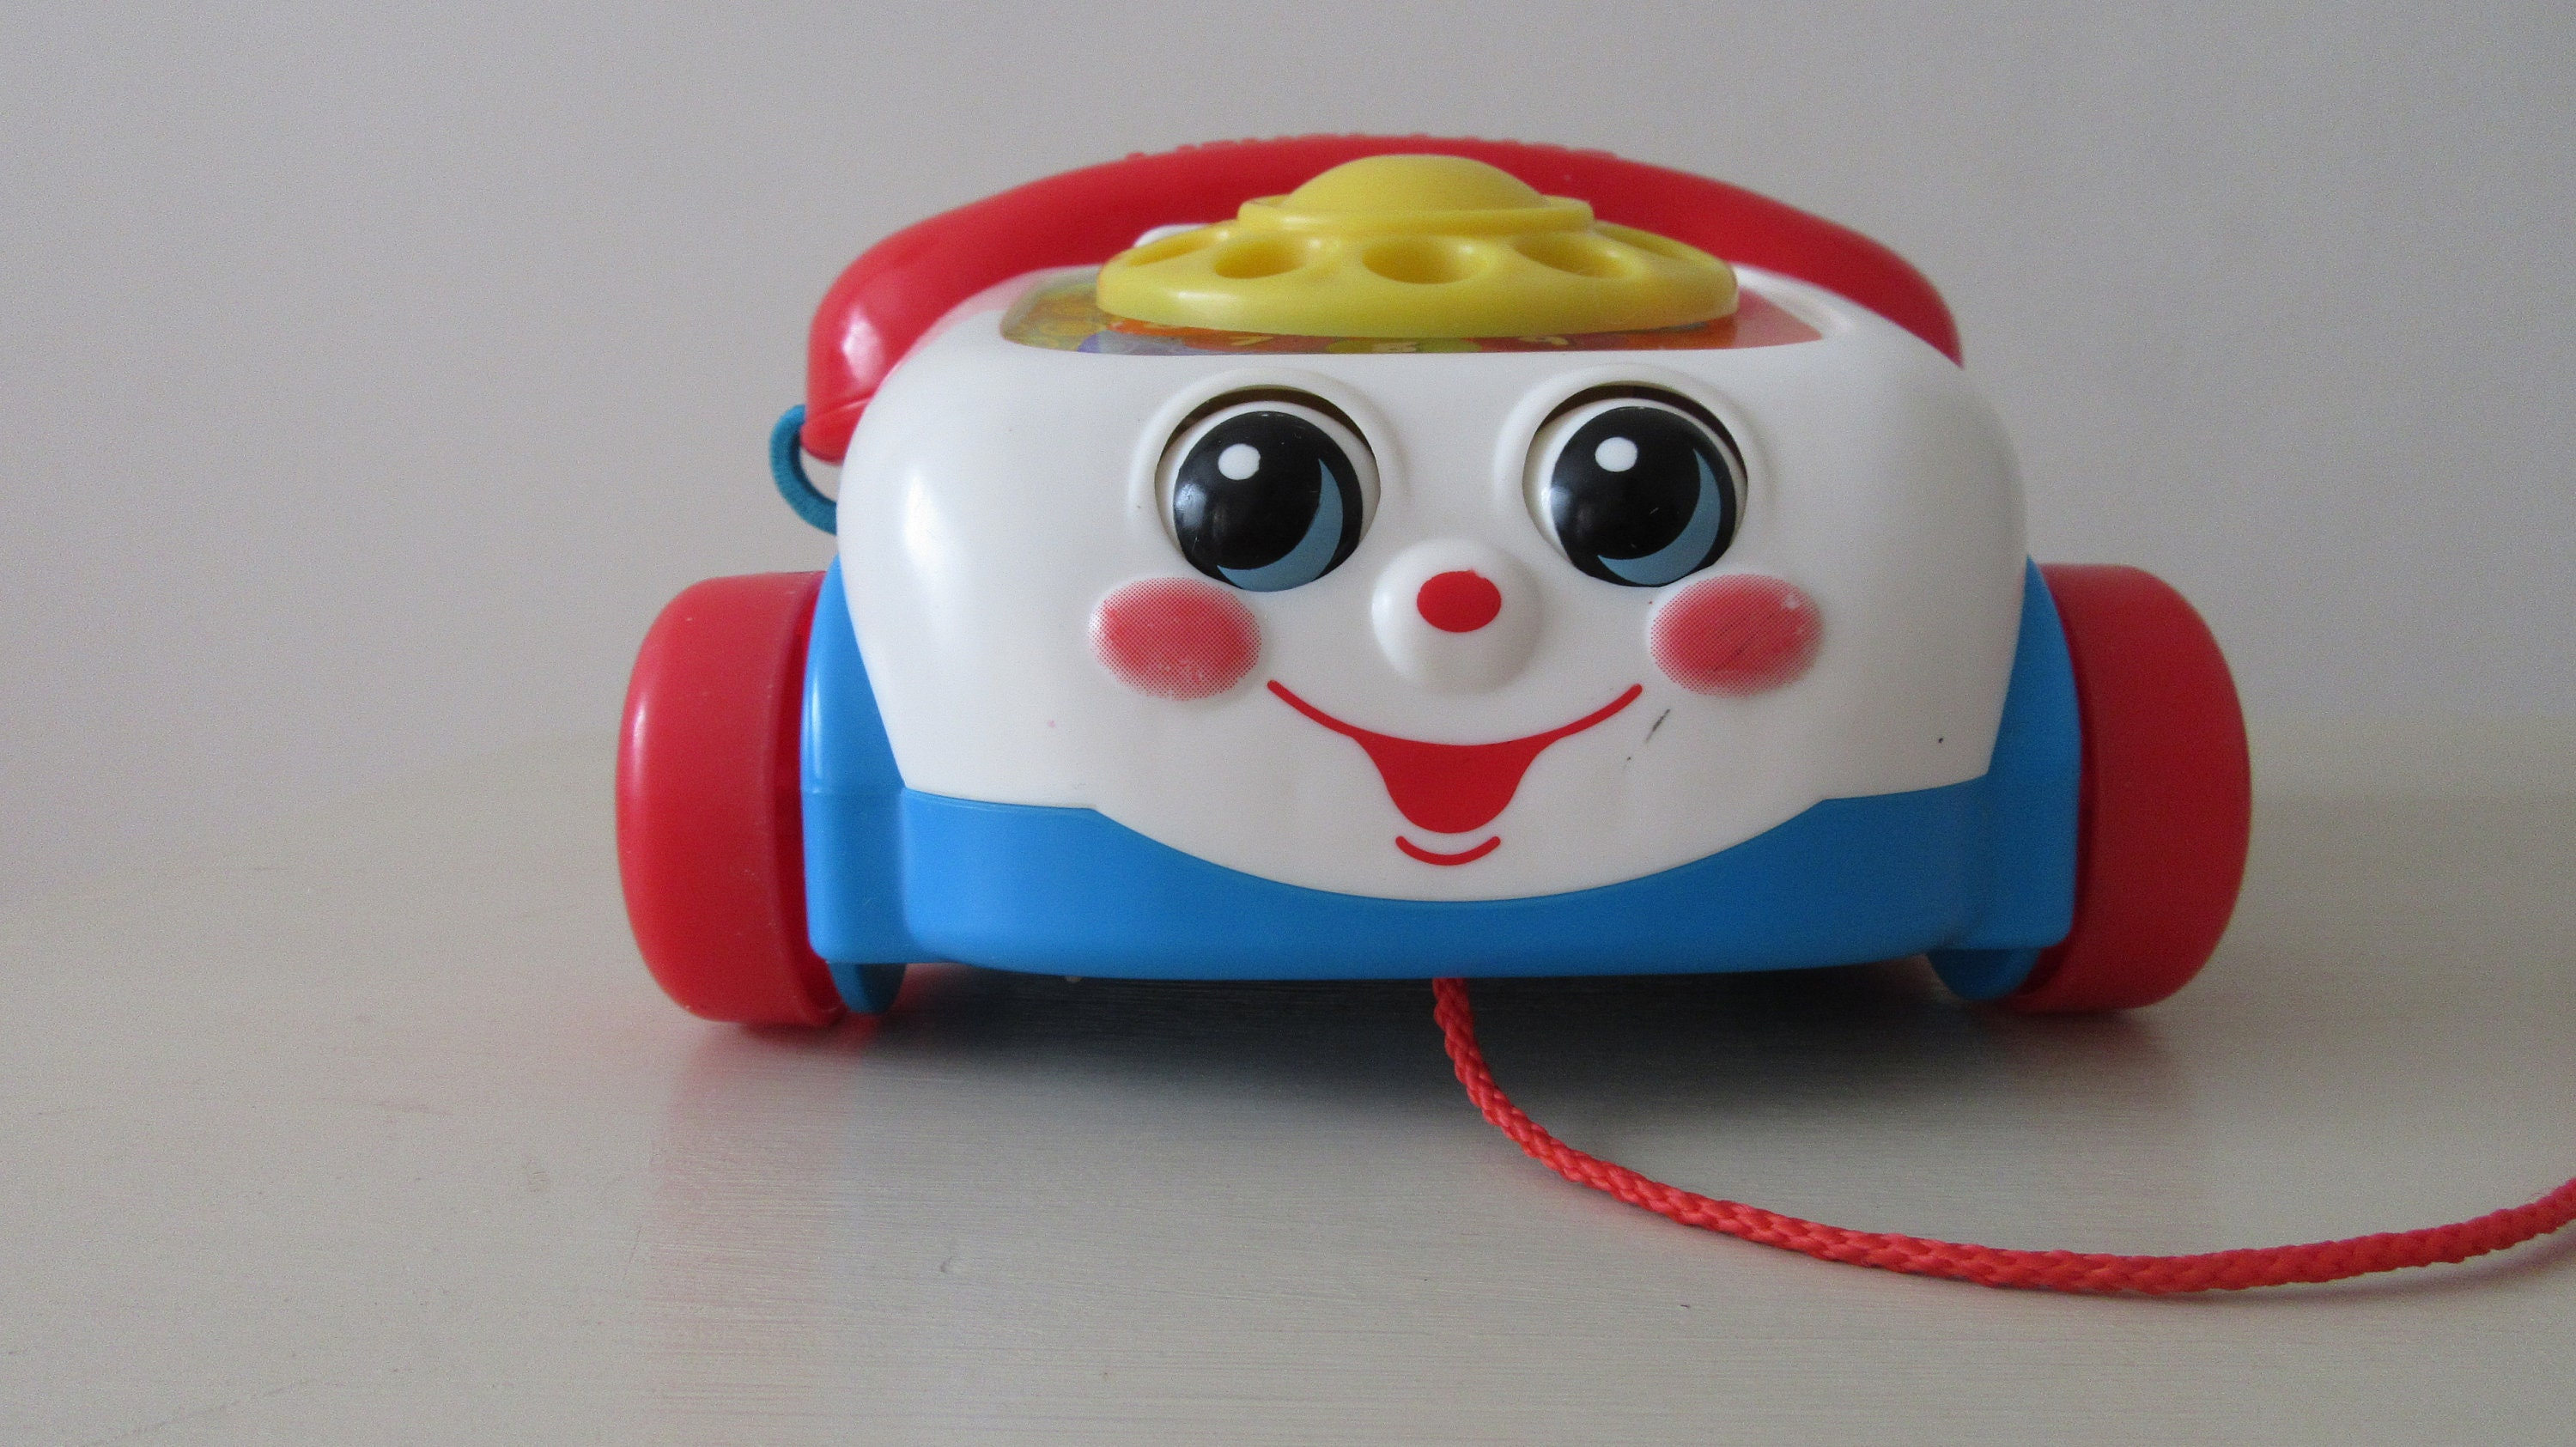 Vintage Fisher Price Toys. Vintage Fisher Price Pull Along Telephone. Vintage Toys. Vintage Fisher Price.Toddler Gift. Baby Gift. Birthday